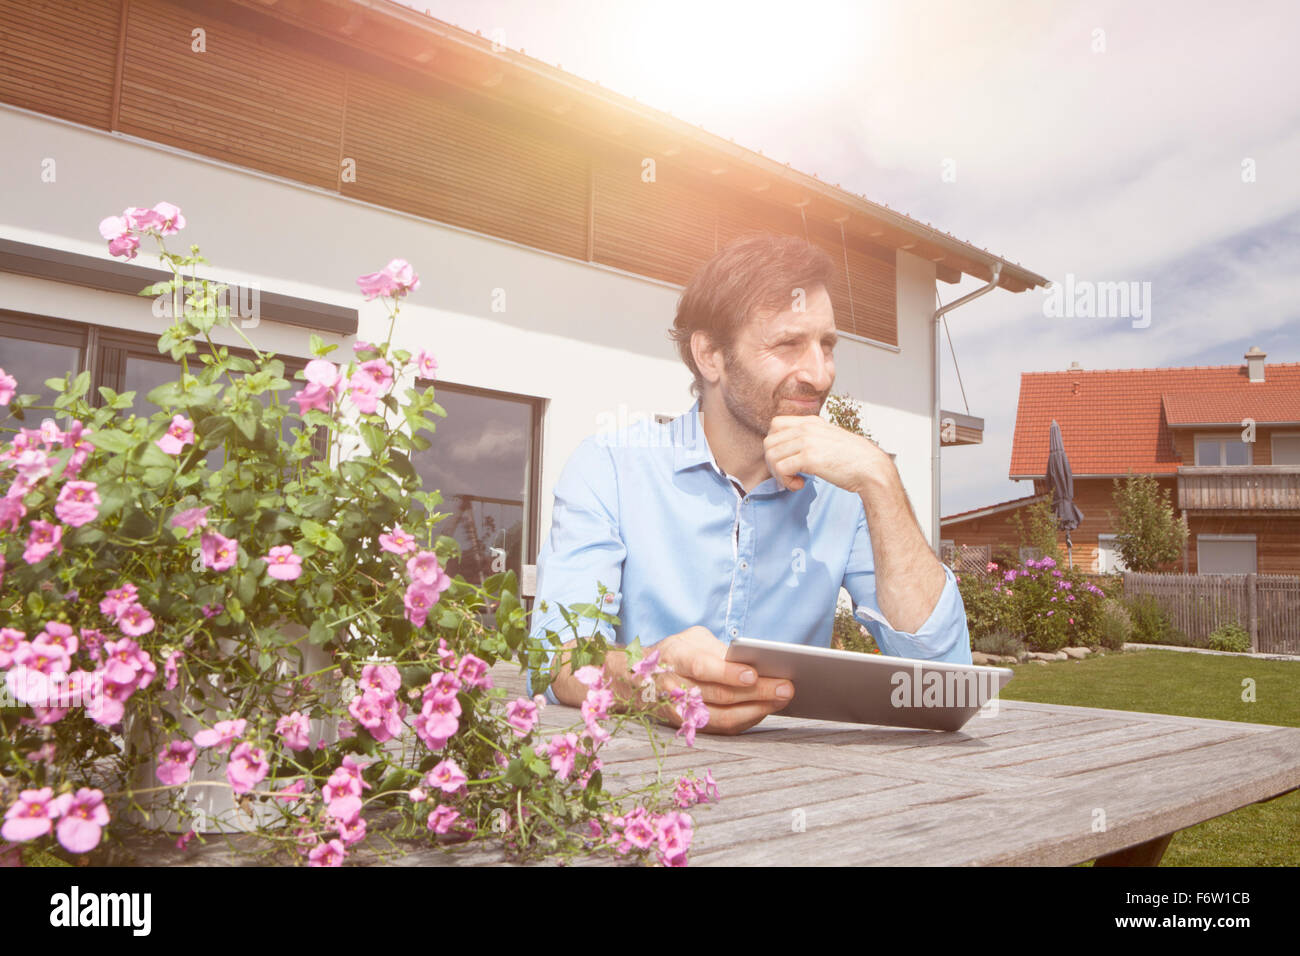 Man with digital tablet in garden - Stock Image